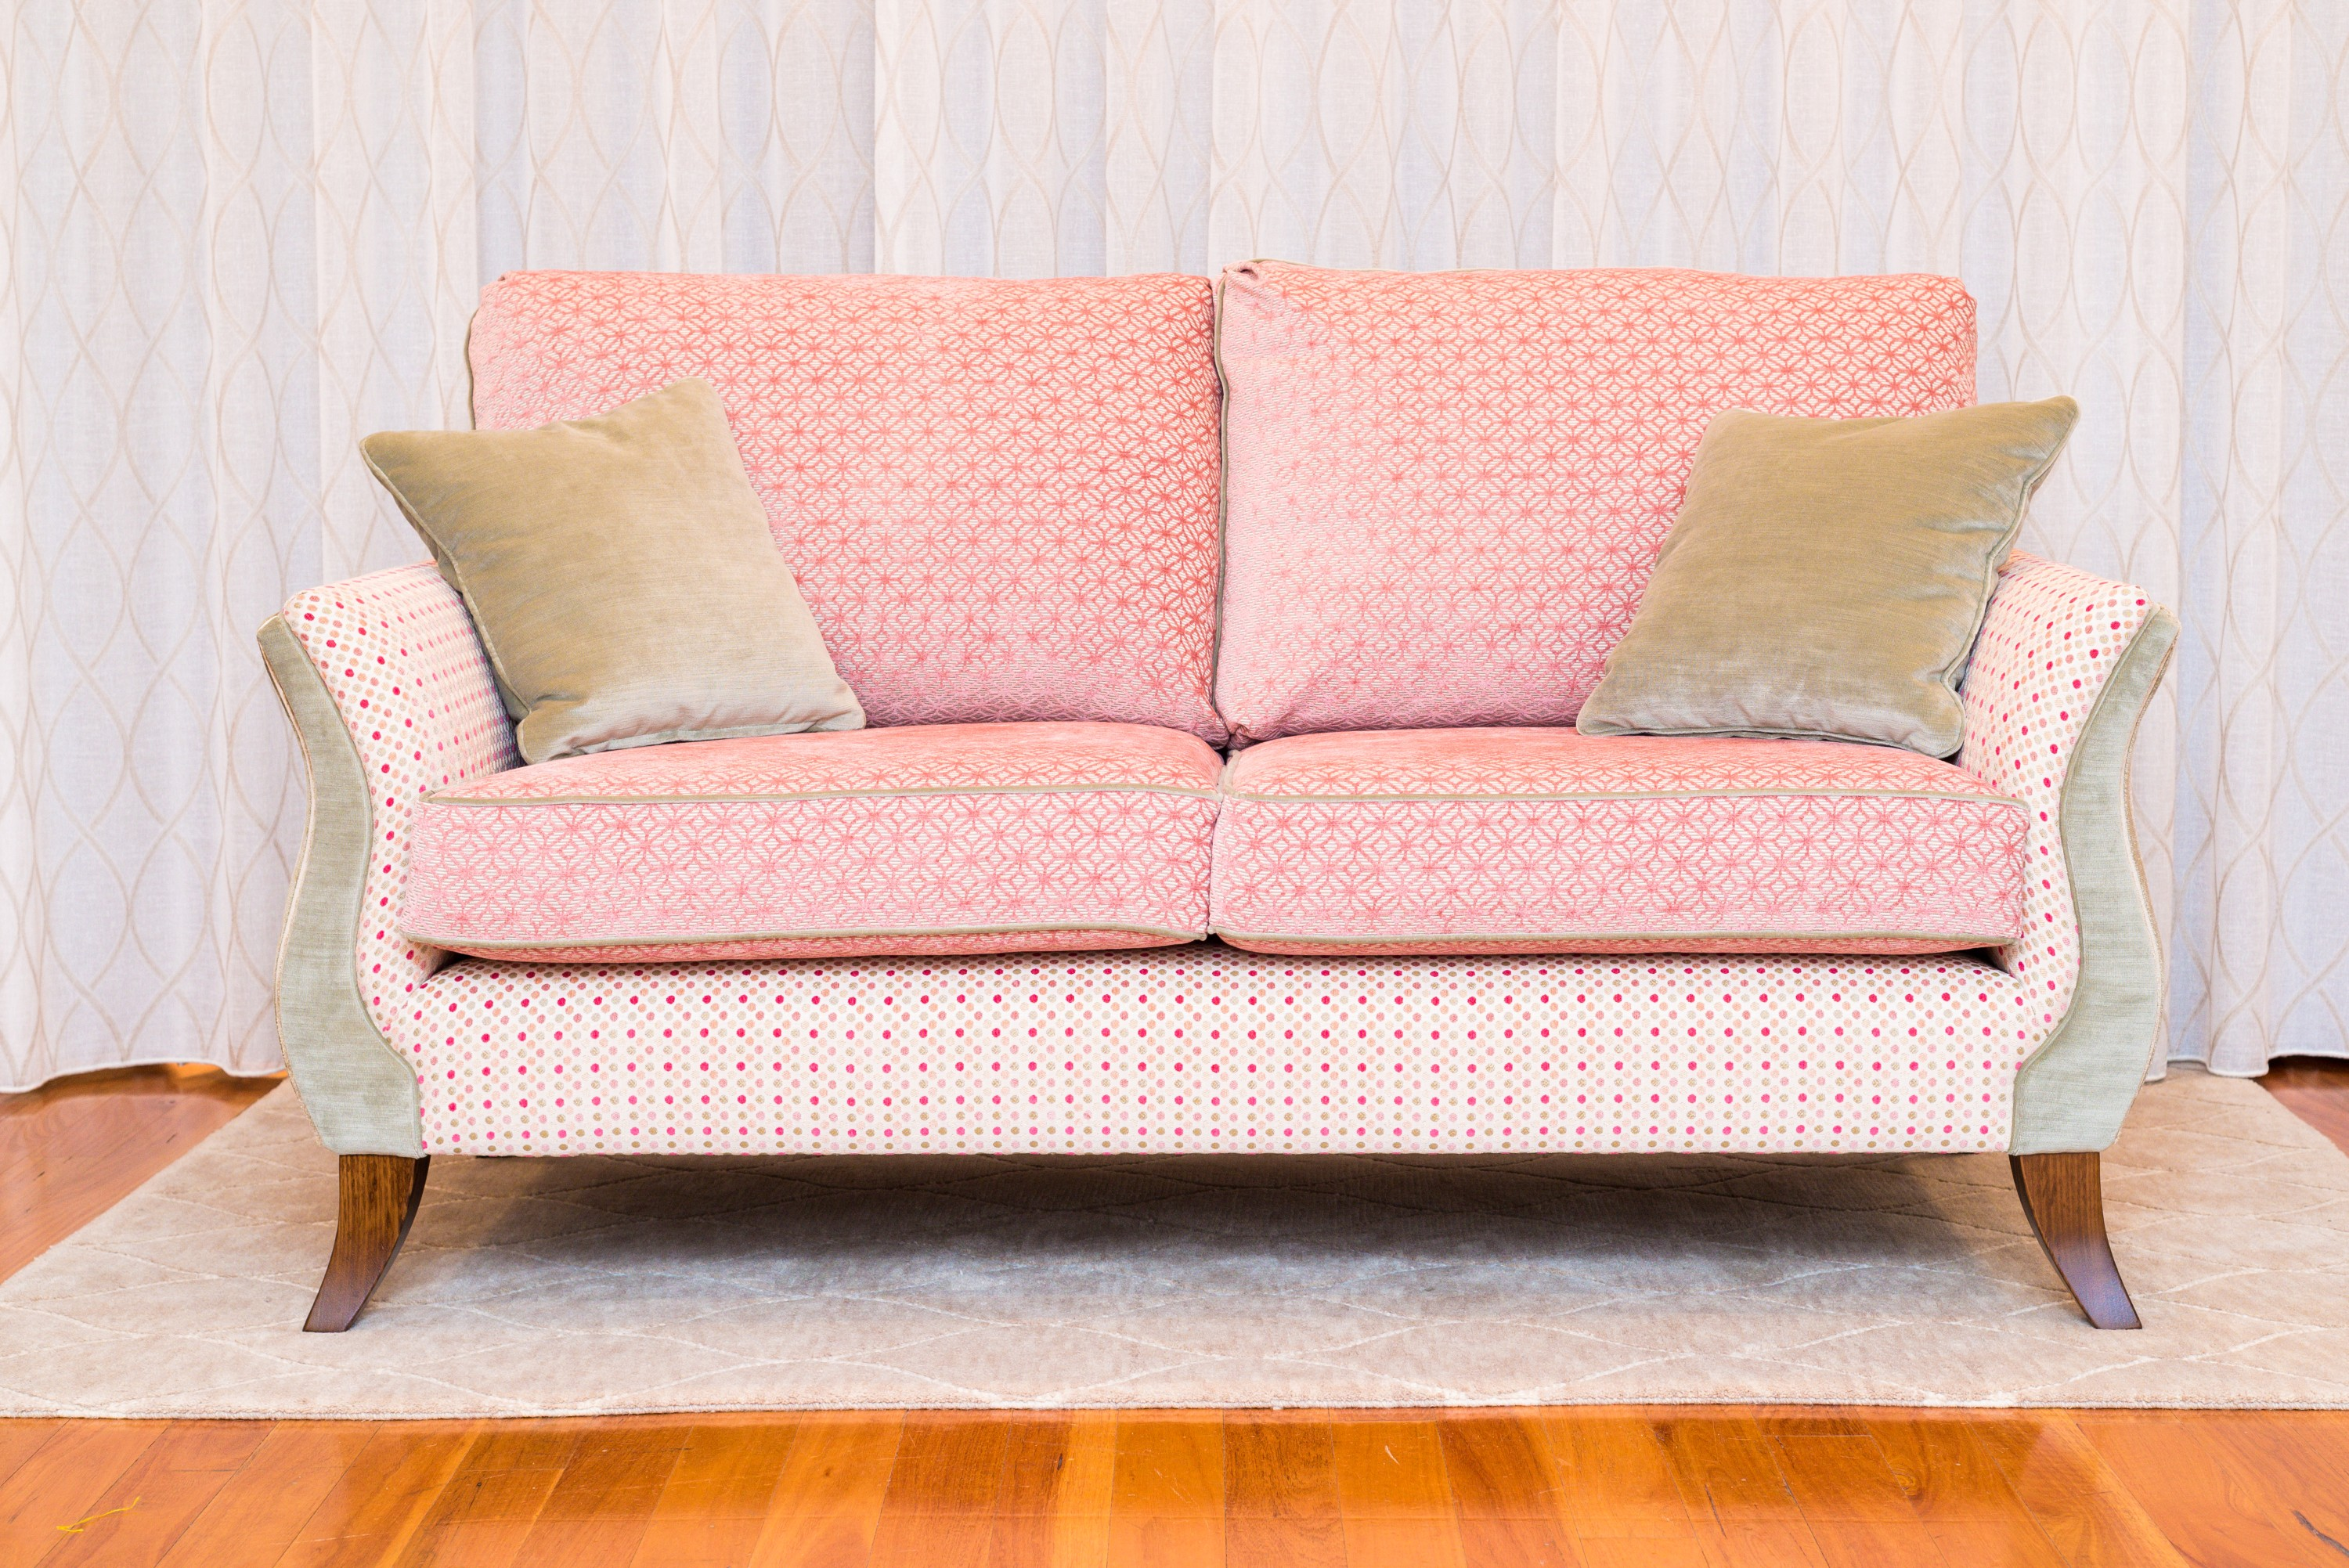 Vogue – Sofa design and Manufacture Perth Torrance and McKenna